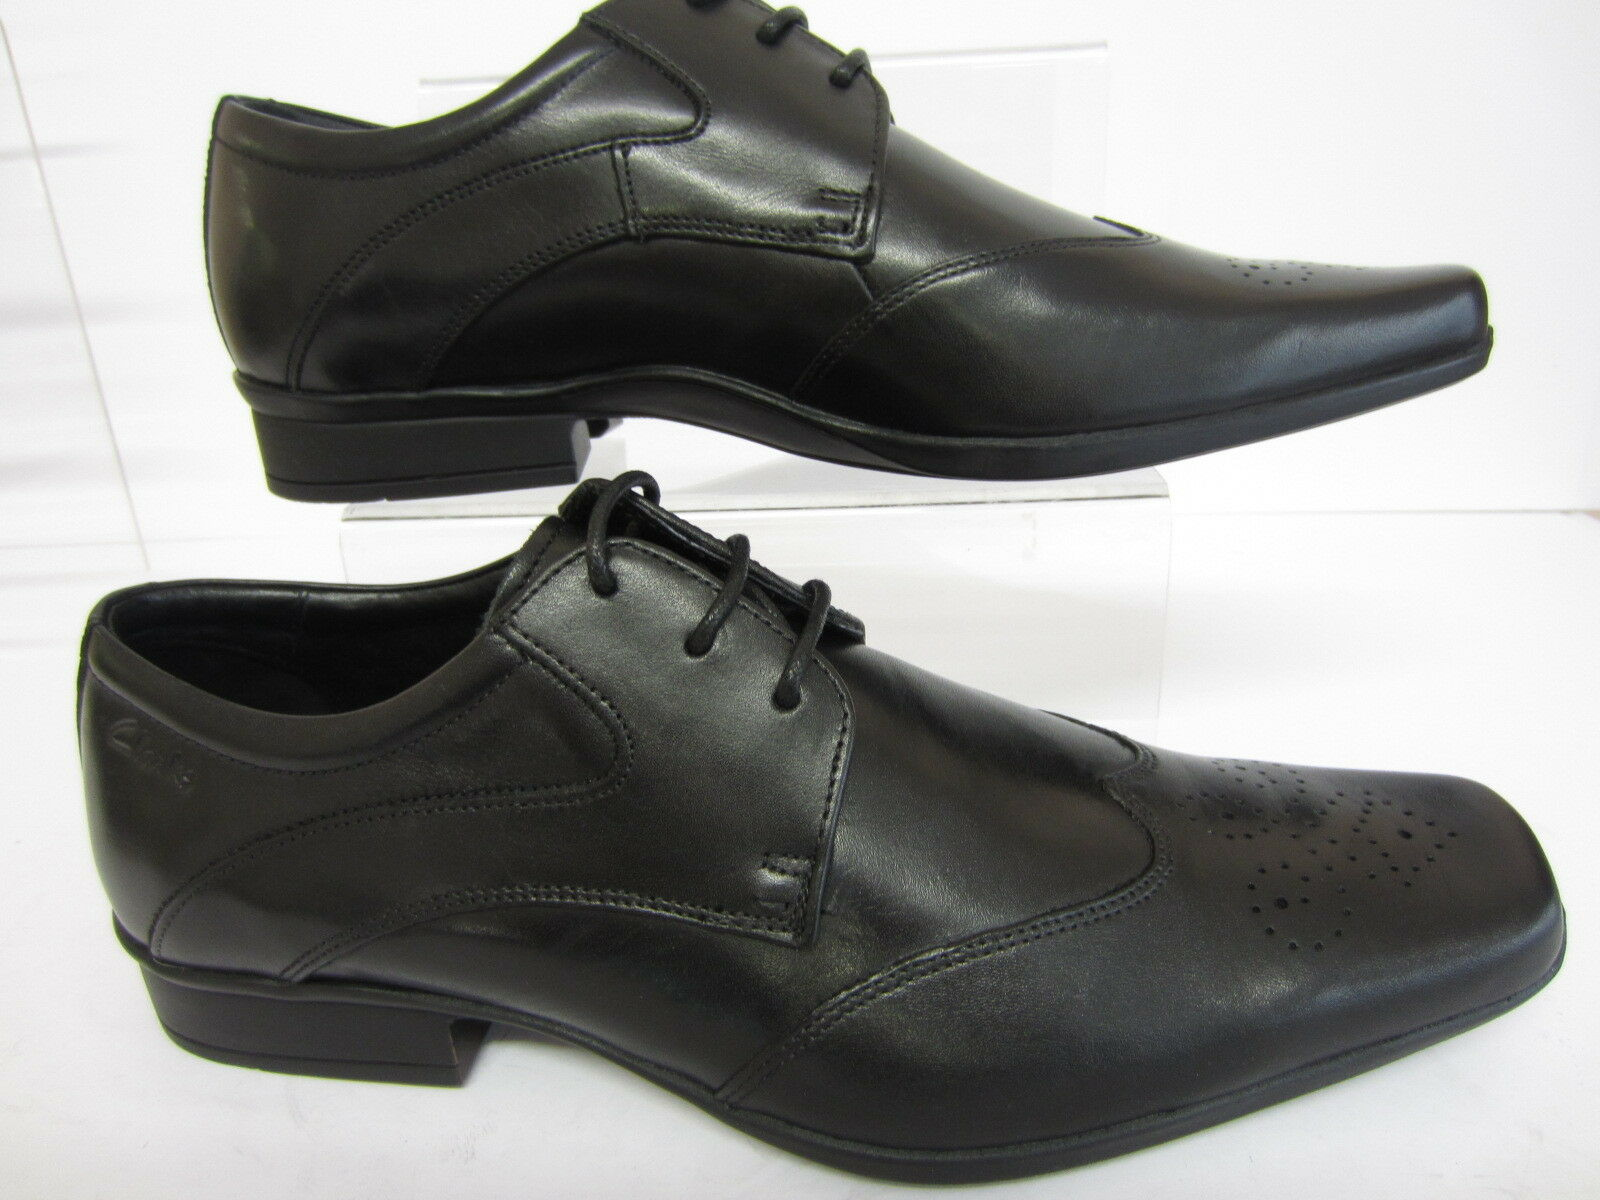 Clarks Affix Moscow Mens Black Leather Shoes Sizes UK 710 G Fitting R22F